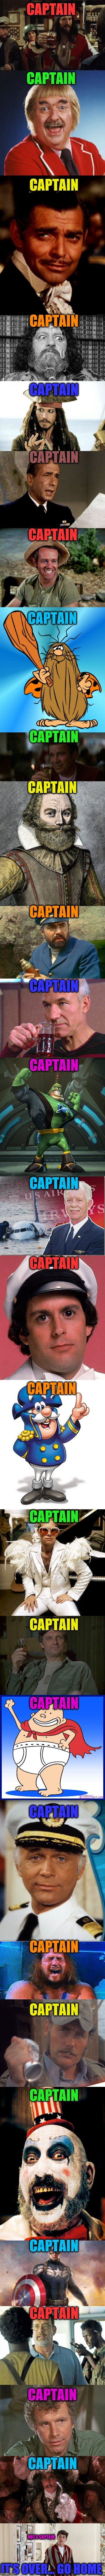 Can you name them all? Even I couldn't.  | CAPTAIN CAPTAIN CAPTAIN CAPTAIN CAPTAIN CAPTAIN CAPTAIN CAPTAIN CAPTAIN CAPTAIN CAPTAIN CAPTAIN CAPTAIN CAPTAIN CAPTAIN CAPTAIN CAPTAIN CAPT | image tagged in memes,captain | made w/ Imgflip meme maker